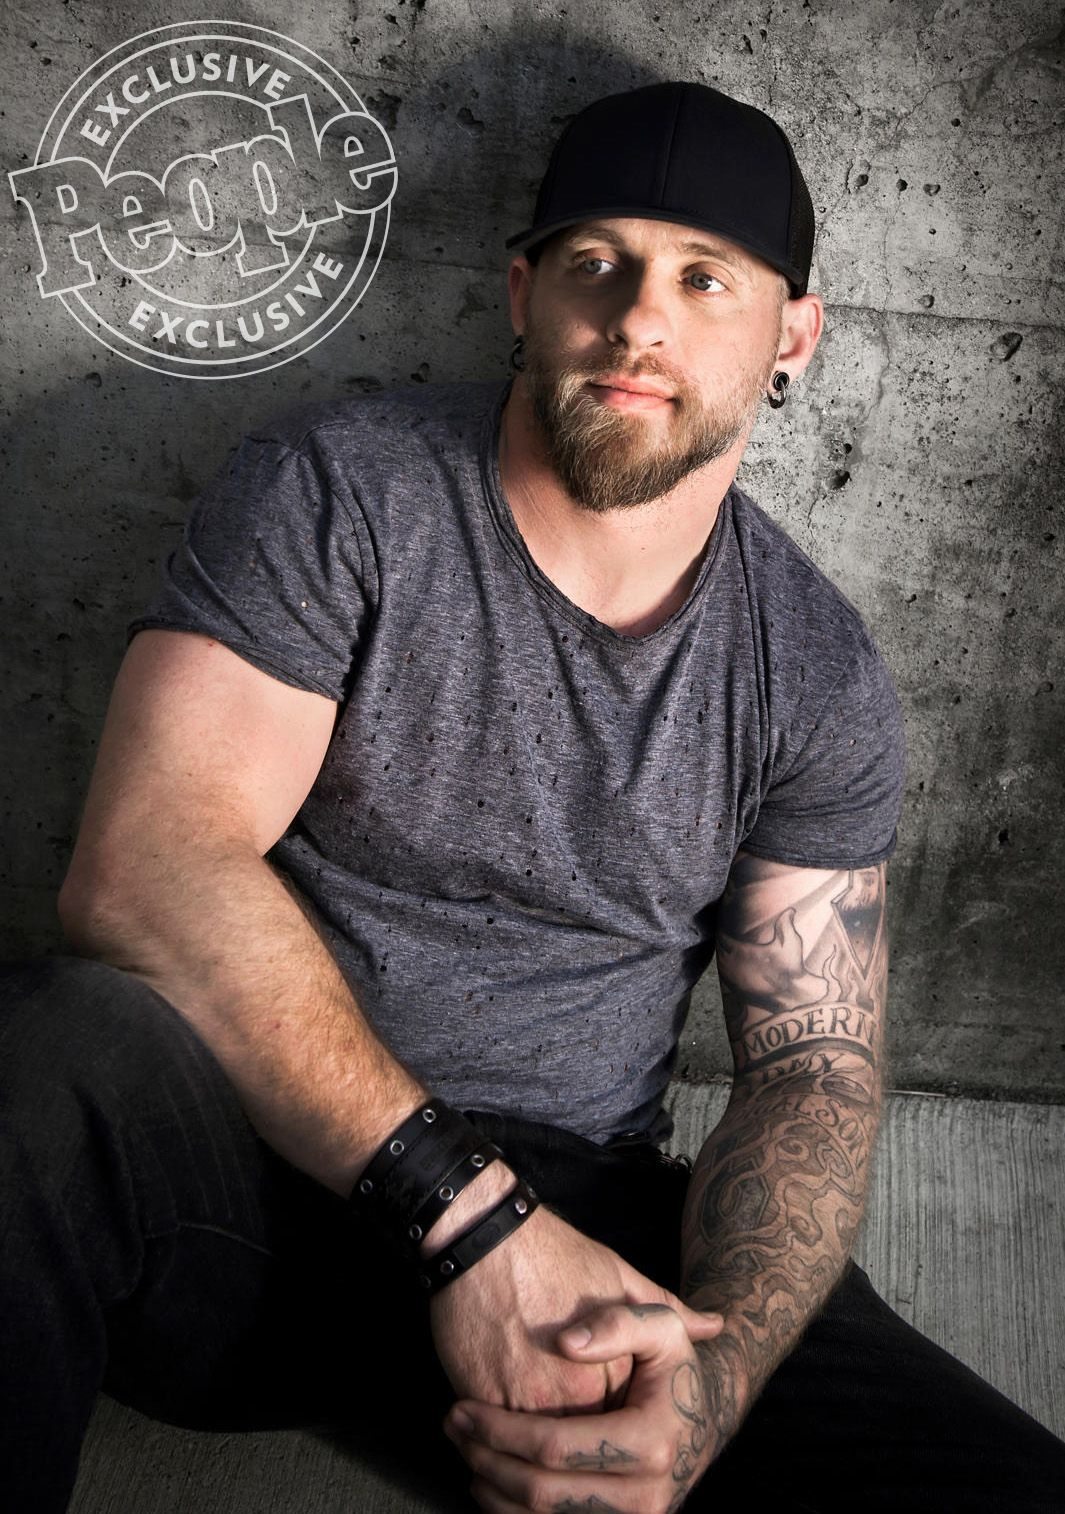 How Brantley Gilbert Went From Keeping A Bottle Within Arms Reach